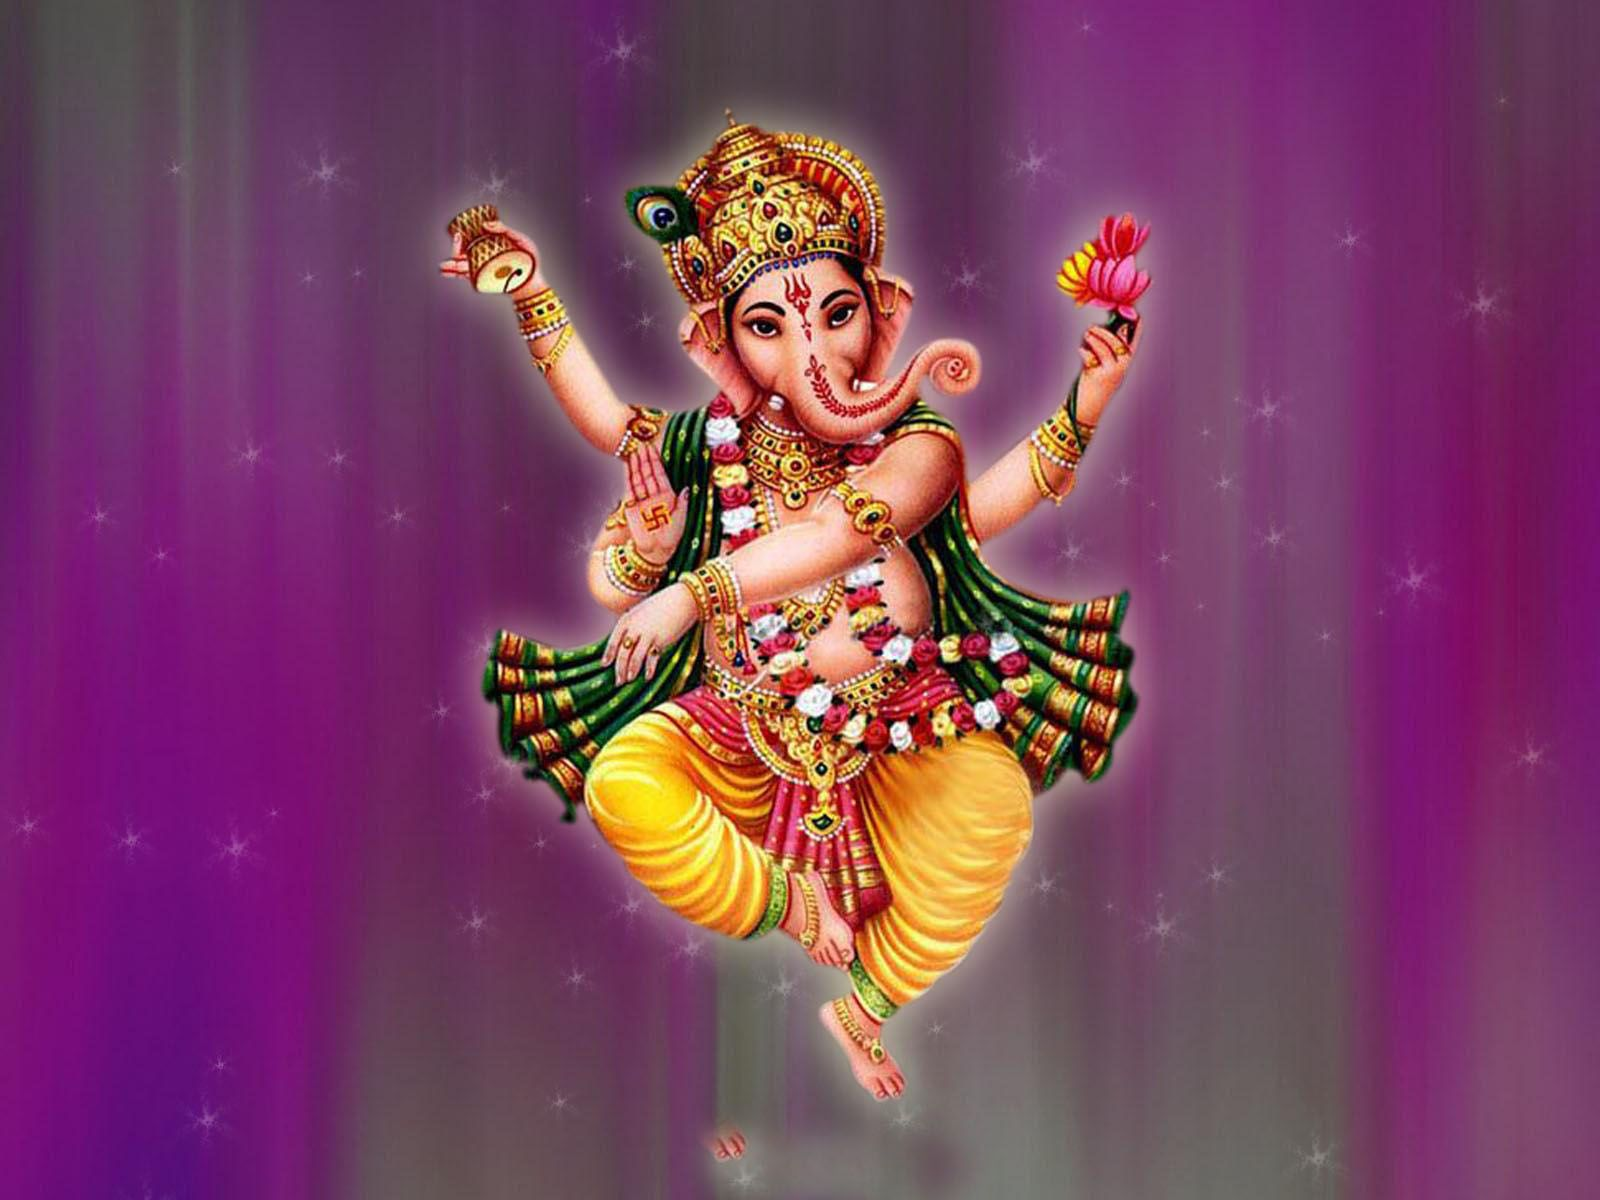 Ganesha Dancing Ganesha God â HD Wallpapers Desktop